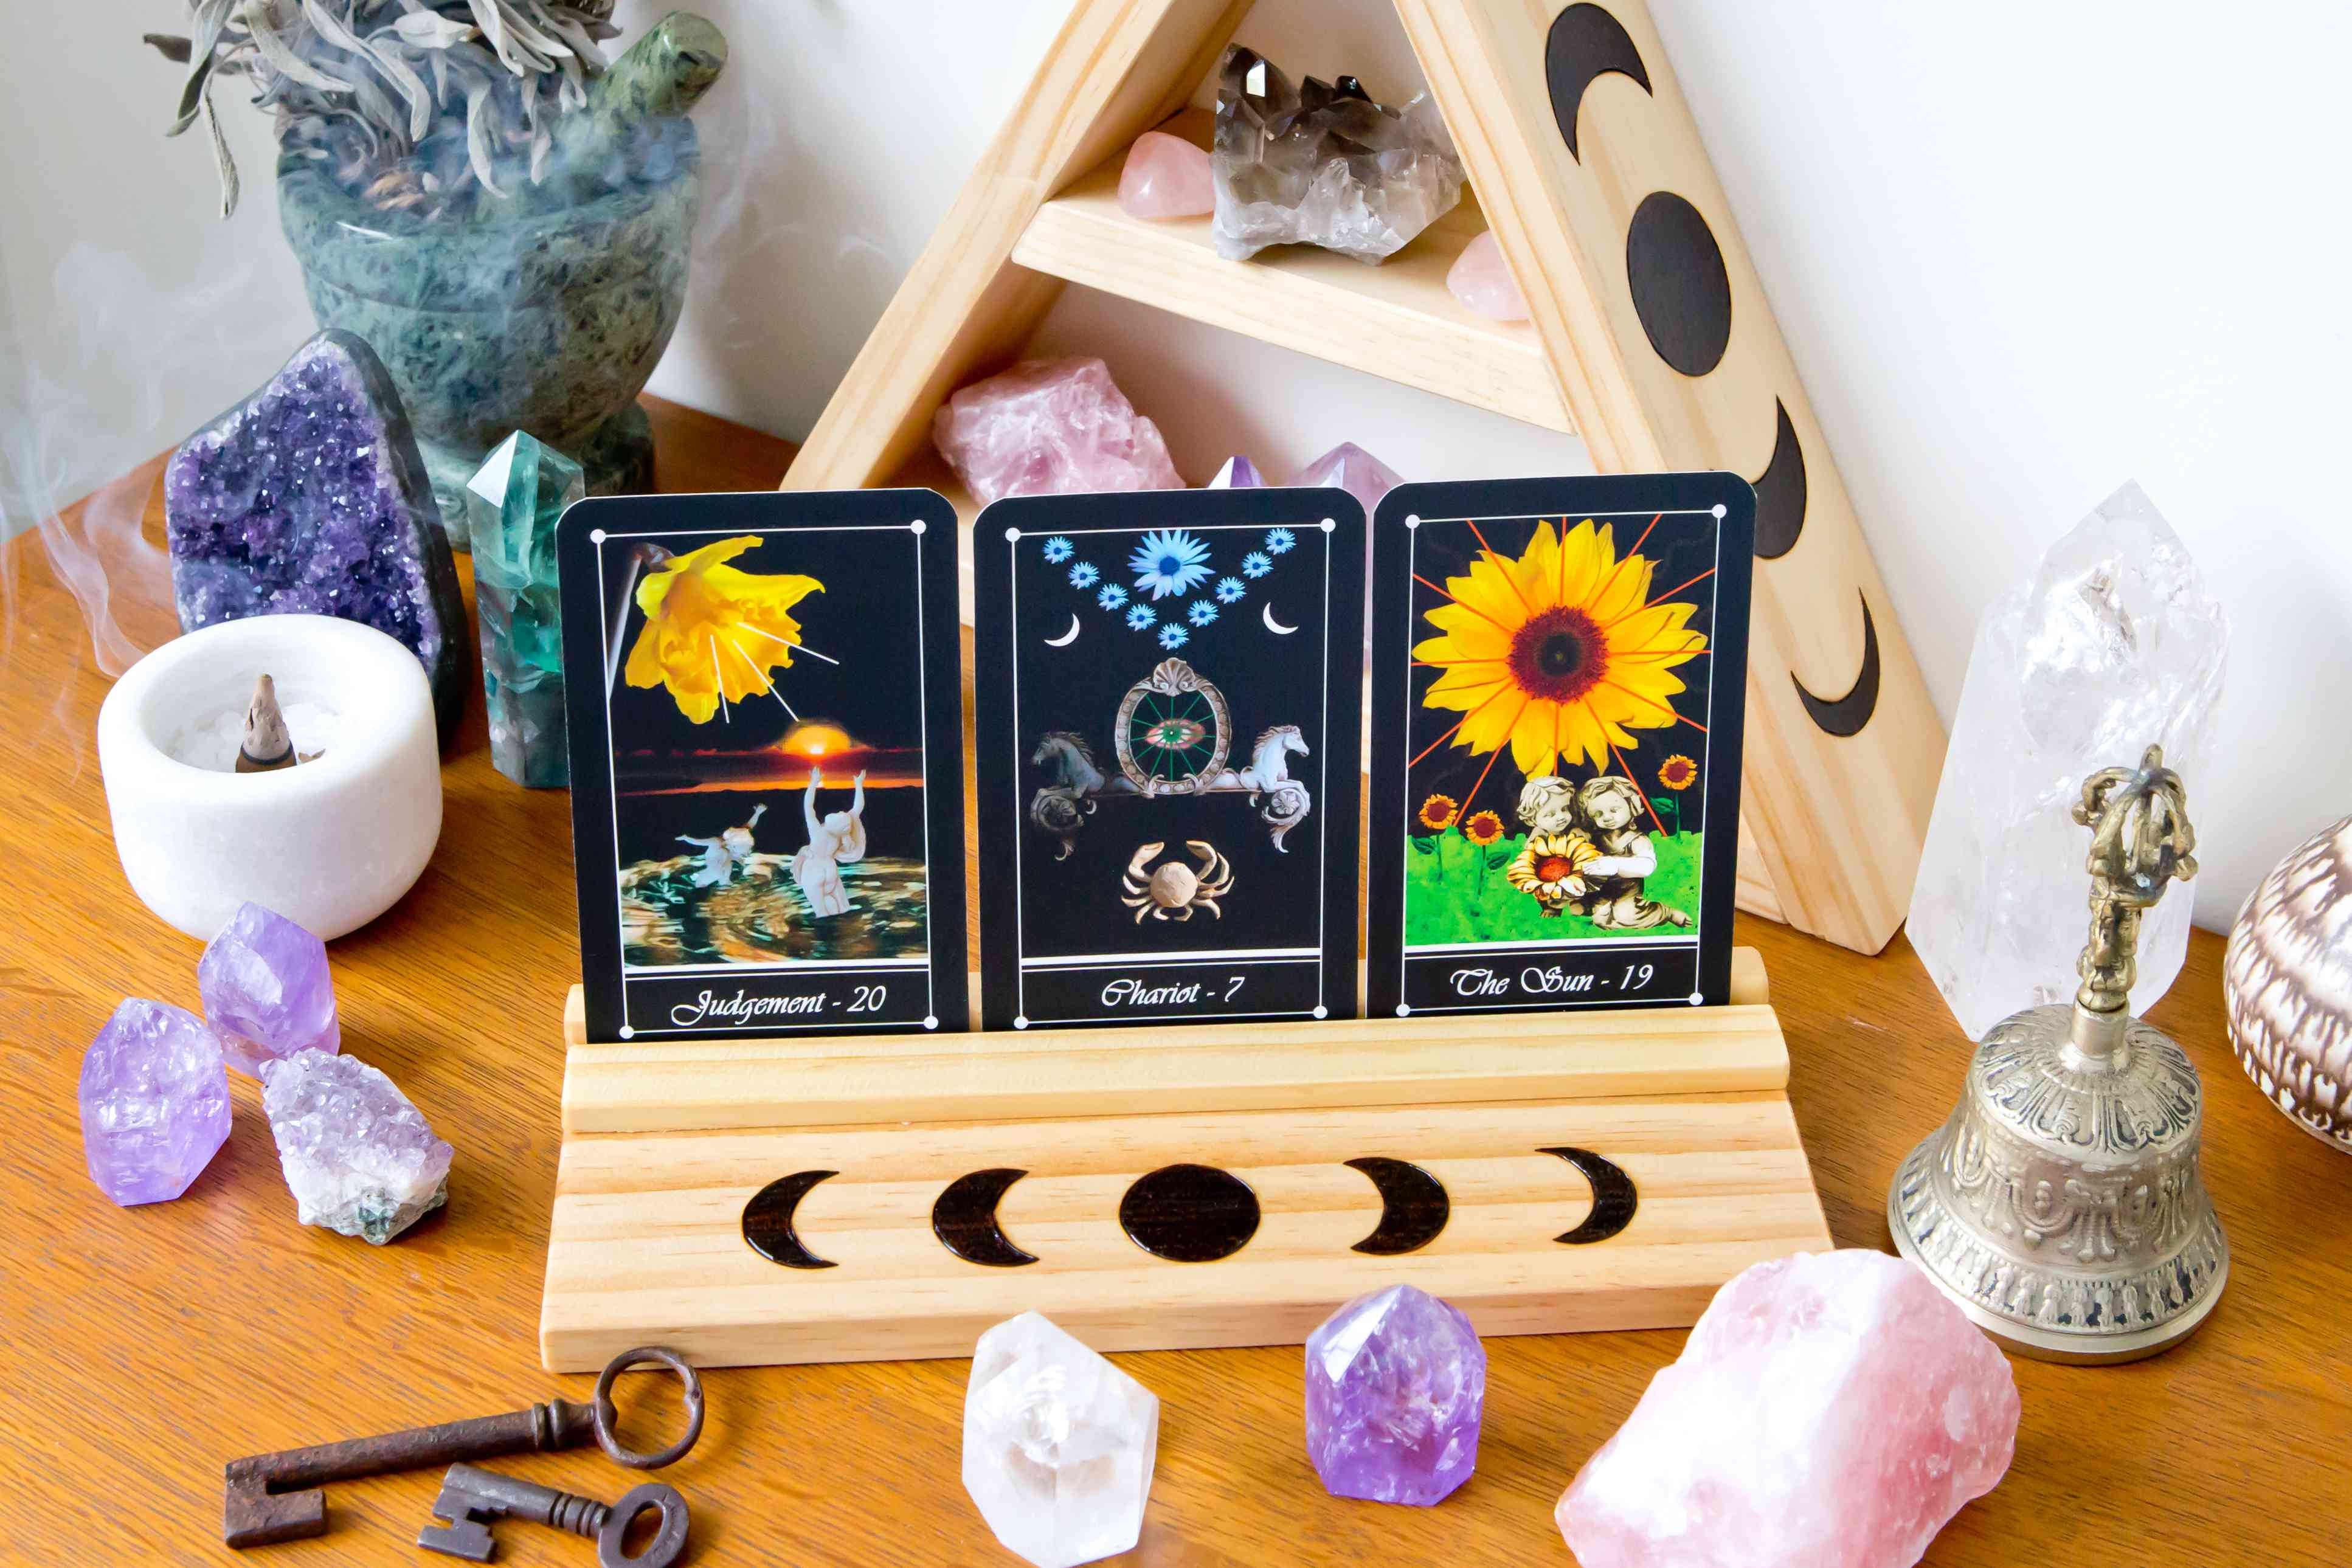 Tarot Cards on stand in Altar space with Moon phase design